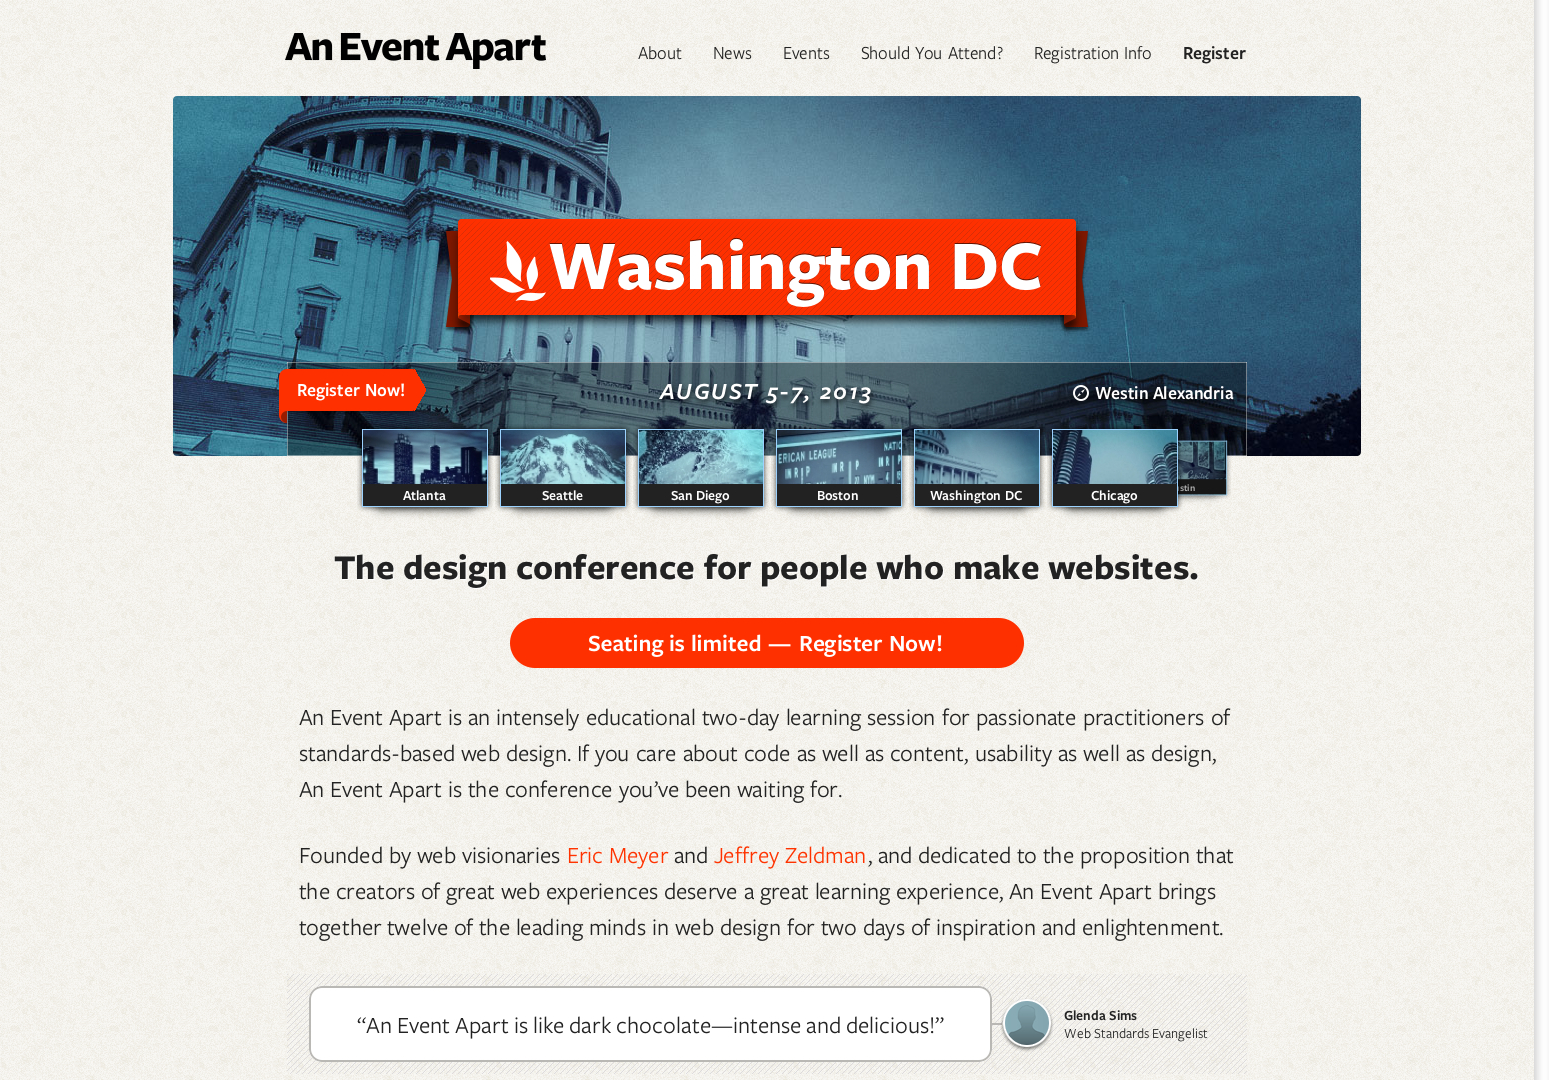 An-Event-Apart-The-design-conference-for-people-who-make-websites.-20121205.jpg